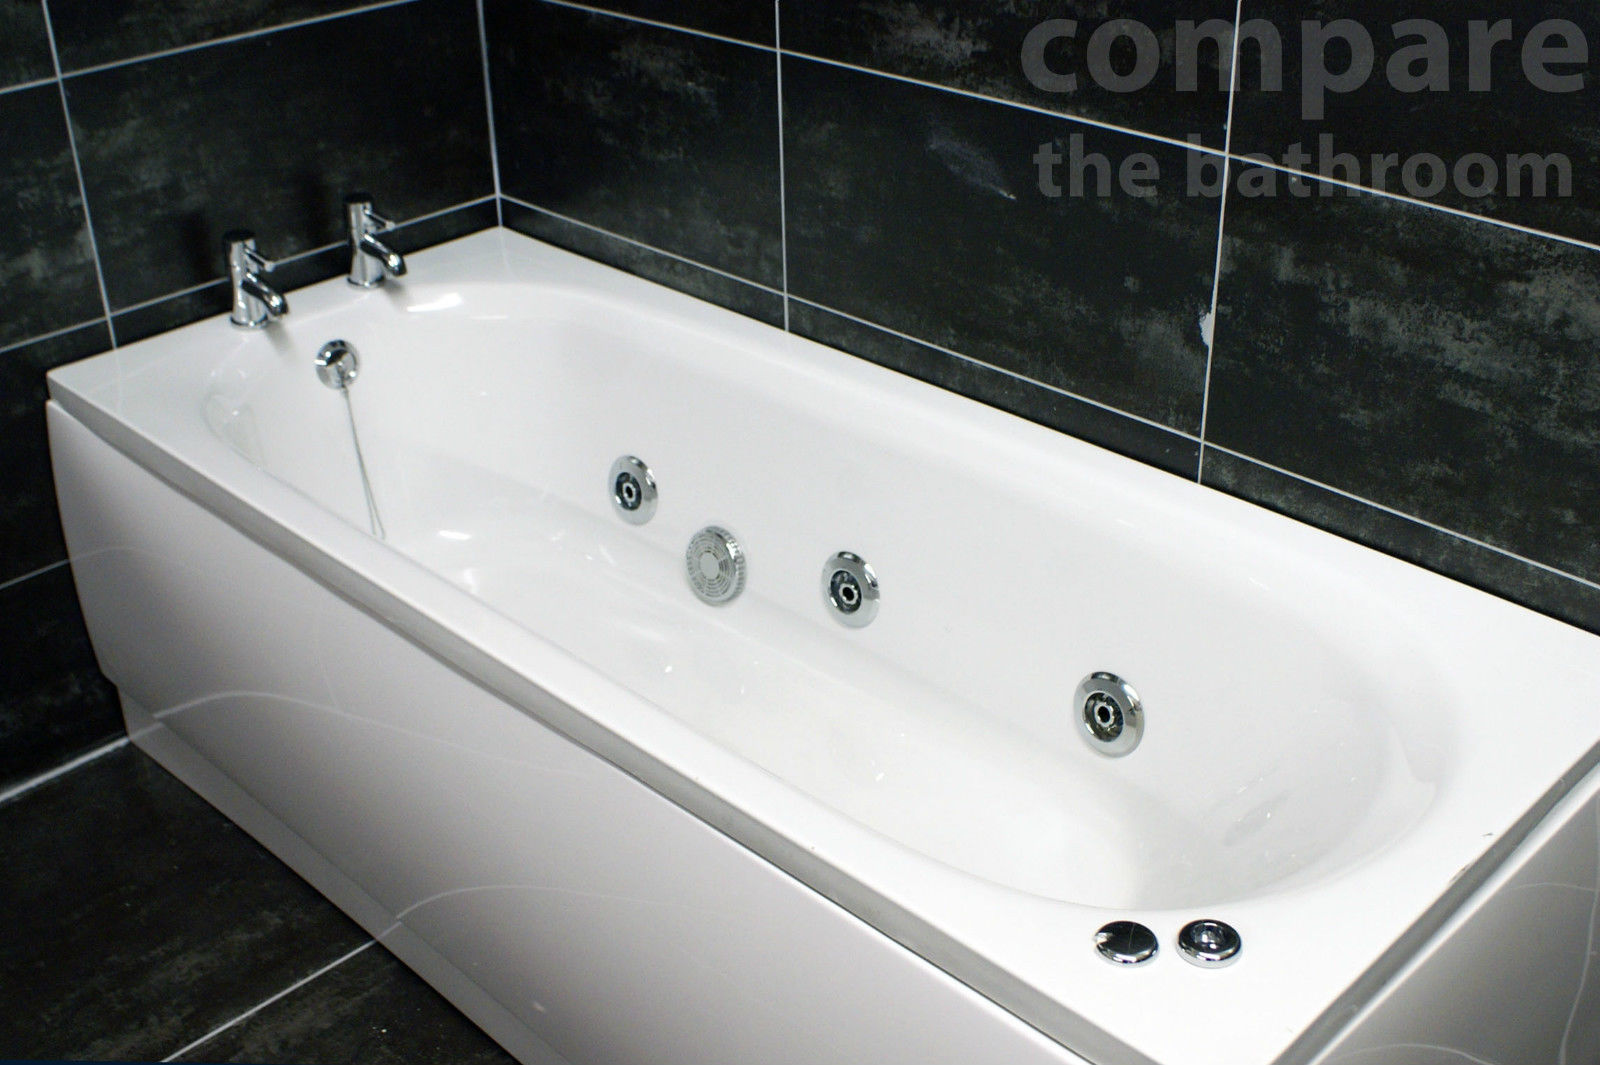 Jacuzzi Whirlpool Details About Whirlpool Bath 1700mm Luxury Spa Massage Jacuzzi Style 6 Chrome Hyflow Jets